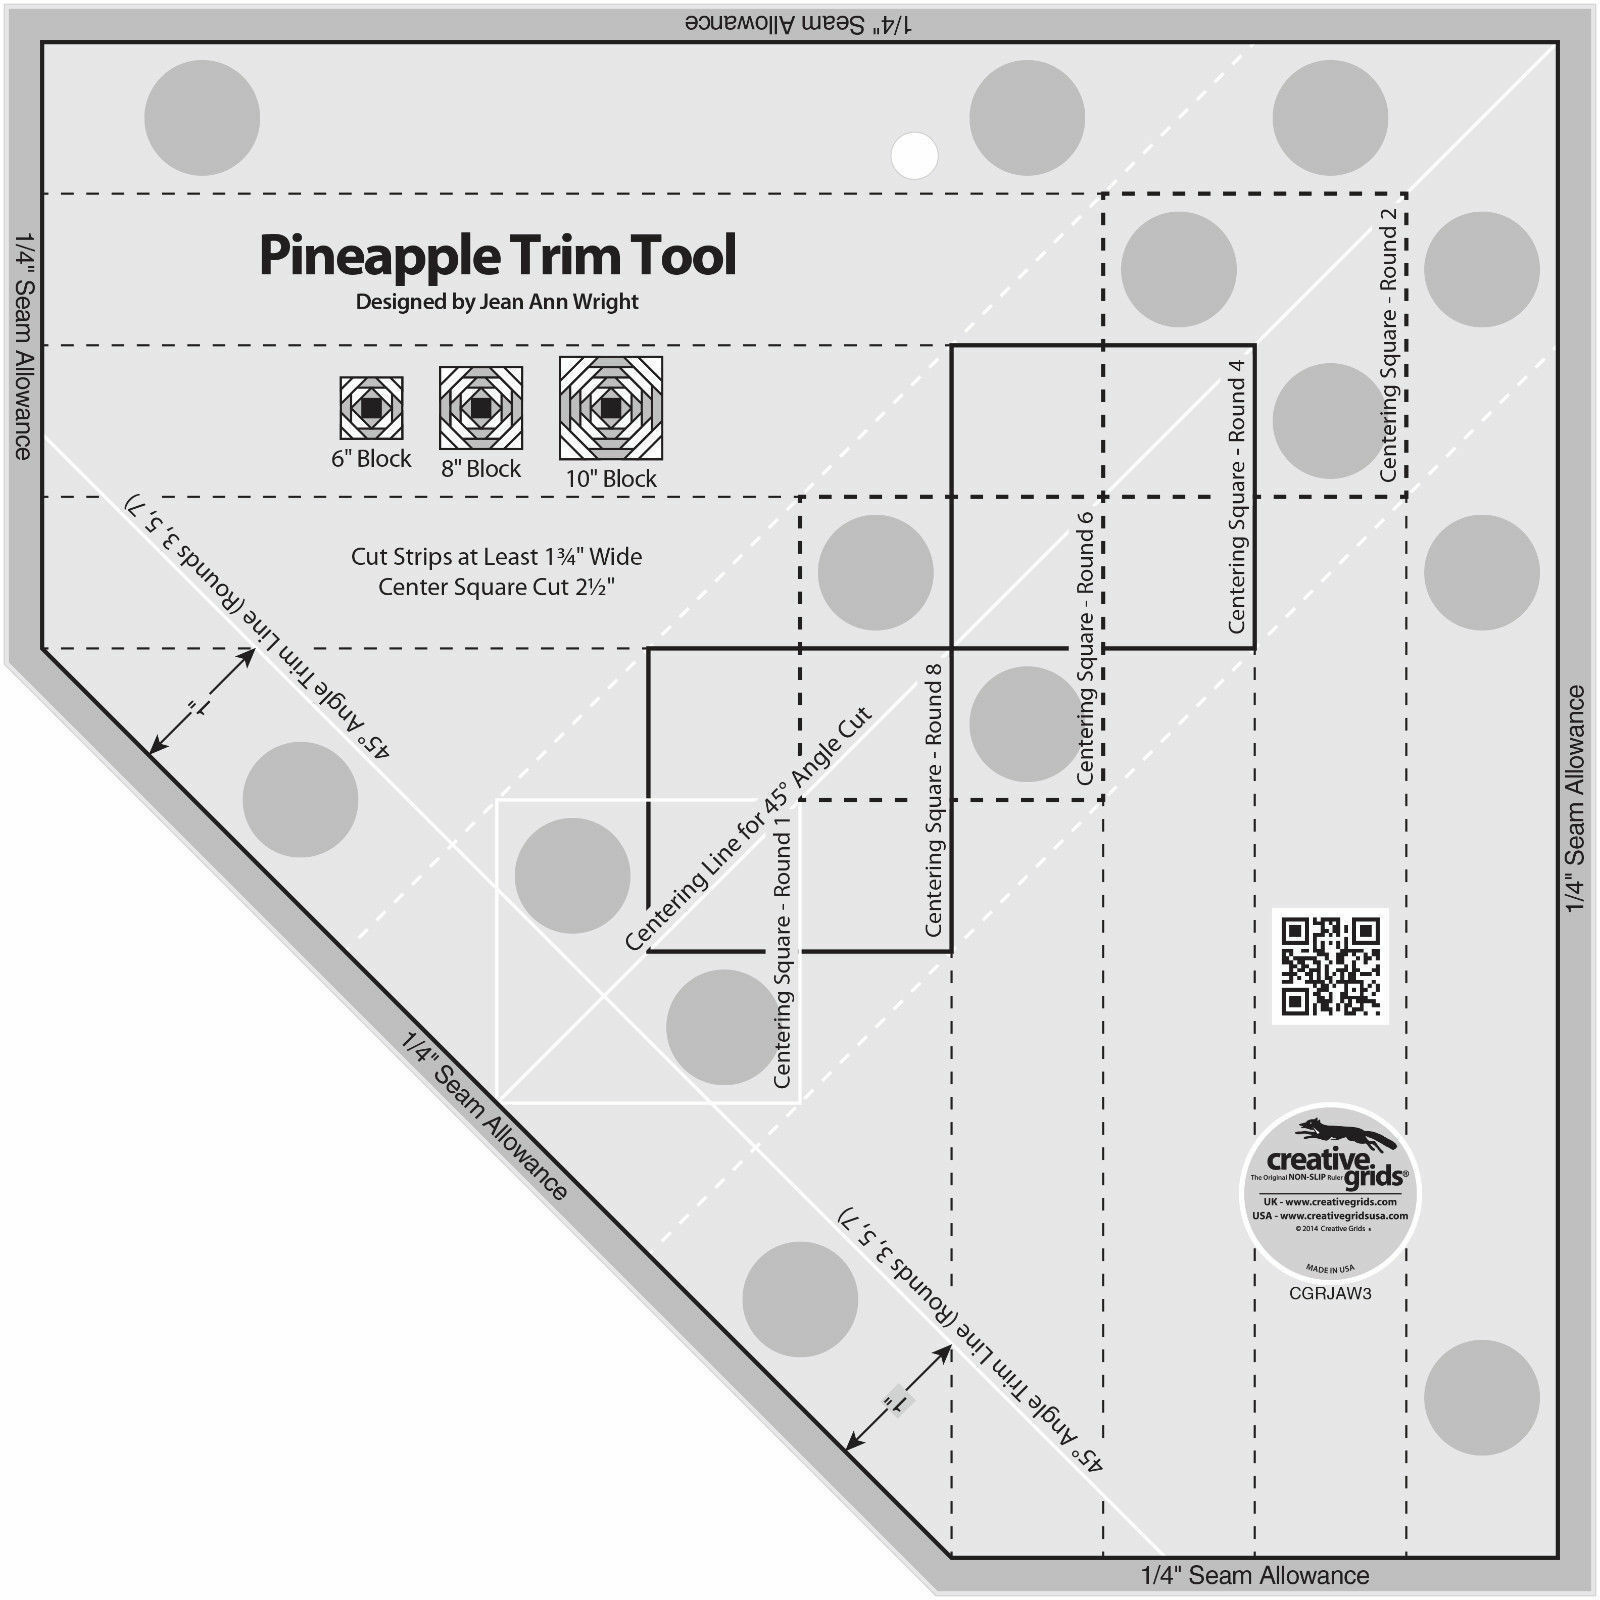 Creative Grids Pineapple Trim Tool Quilting Template Ruler | eBay